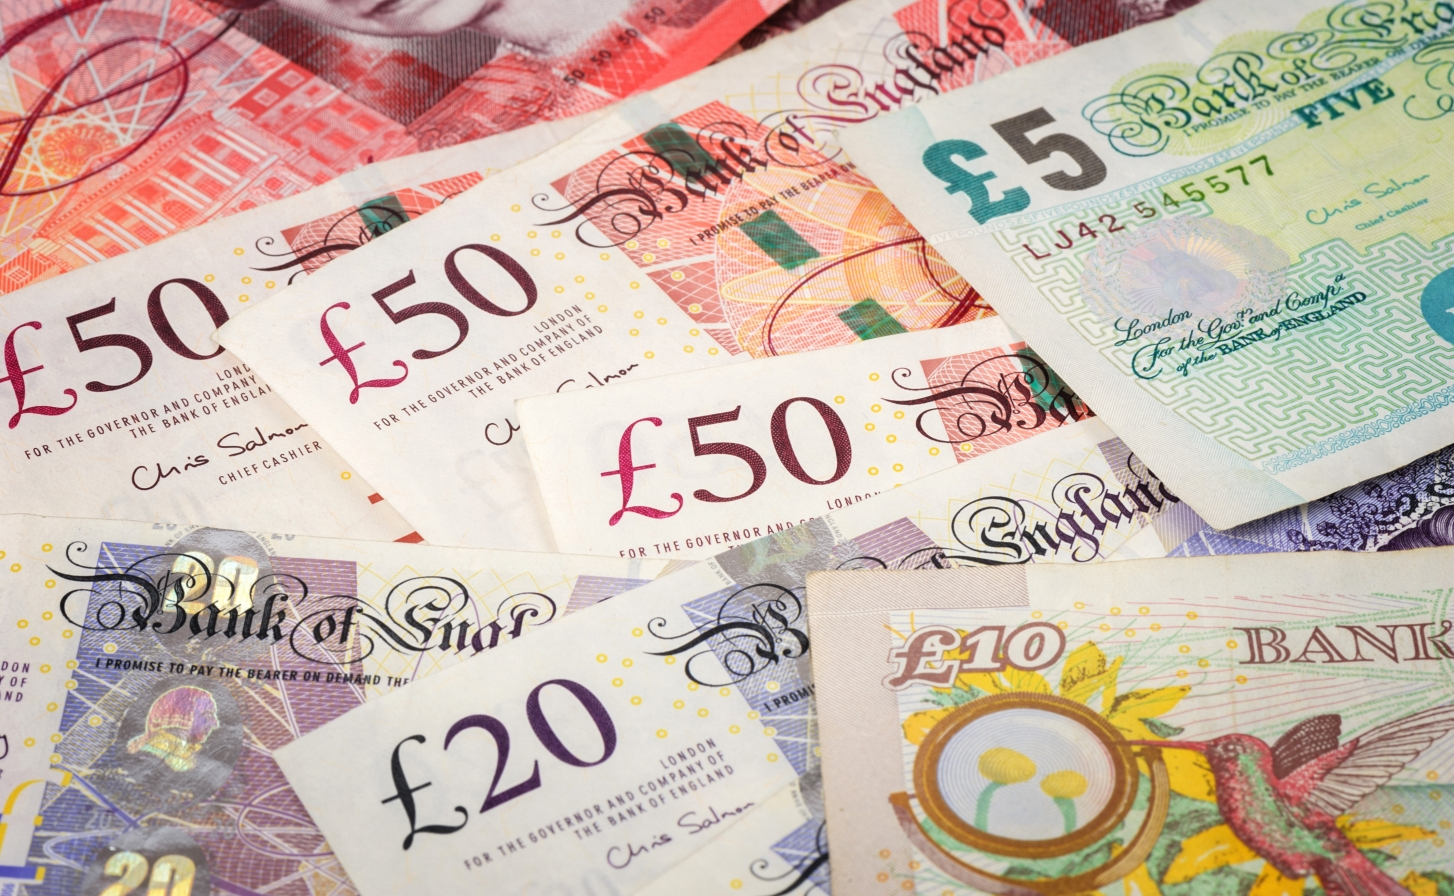 iStock-628516870 Norasit Kaewsai pounds - picture of lots of British paper currency